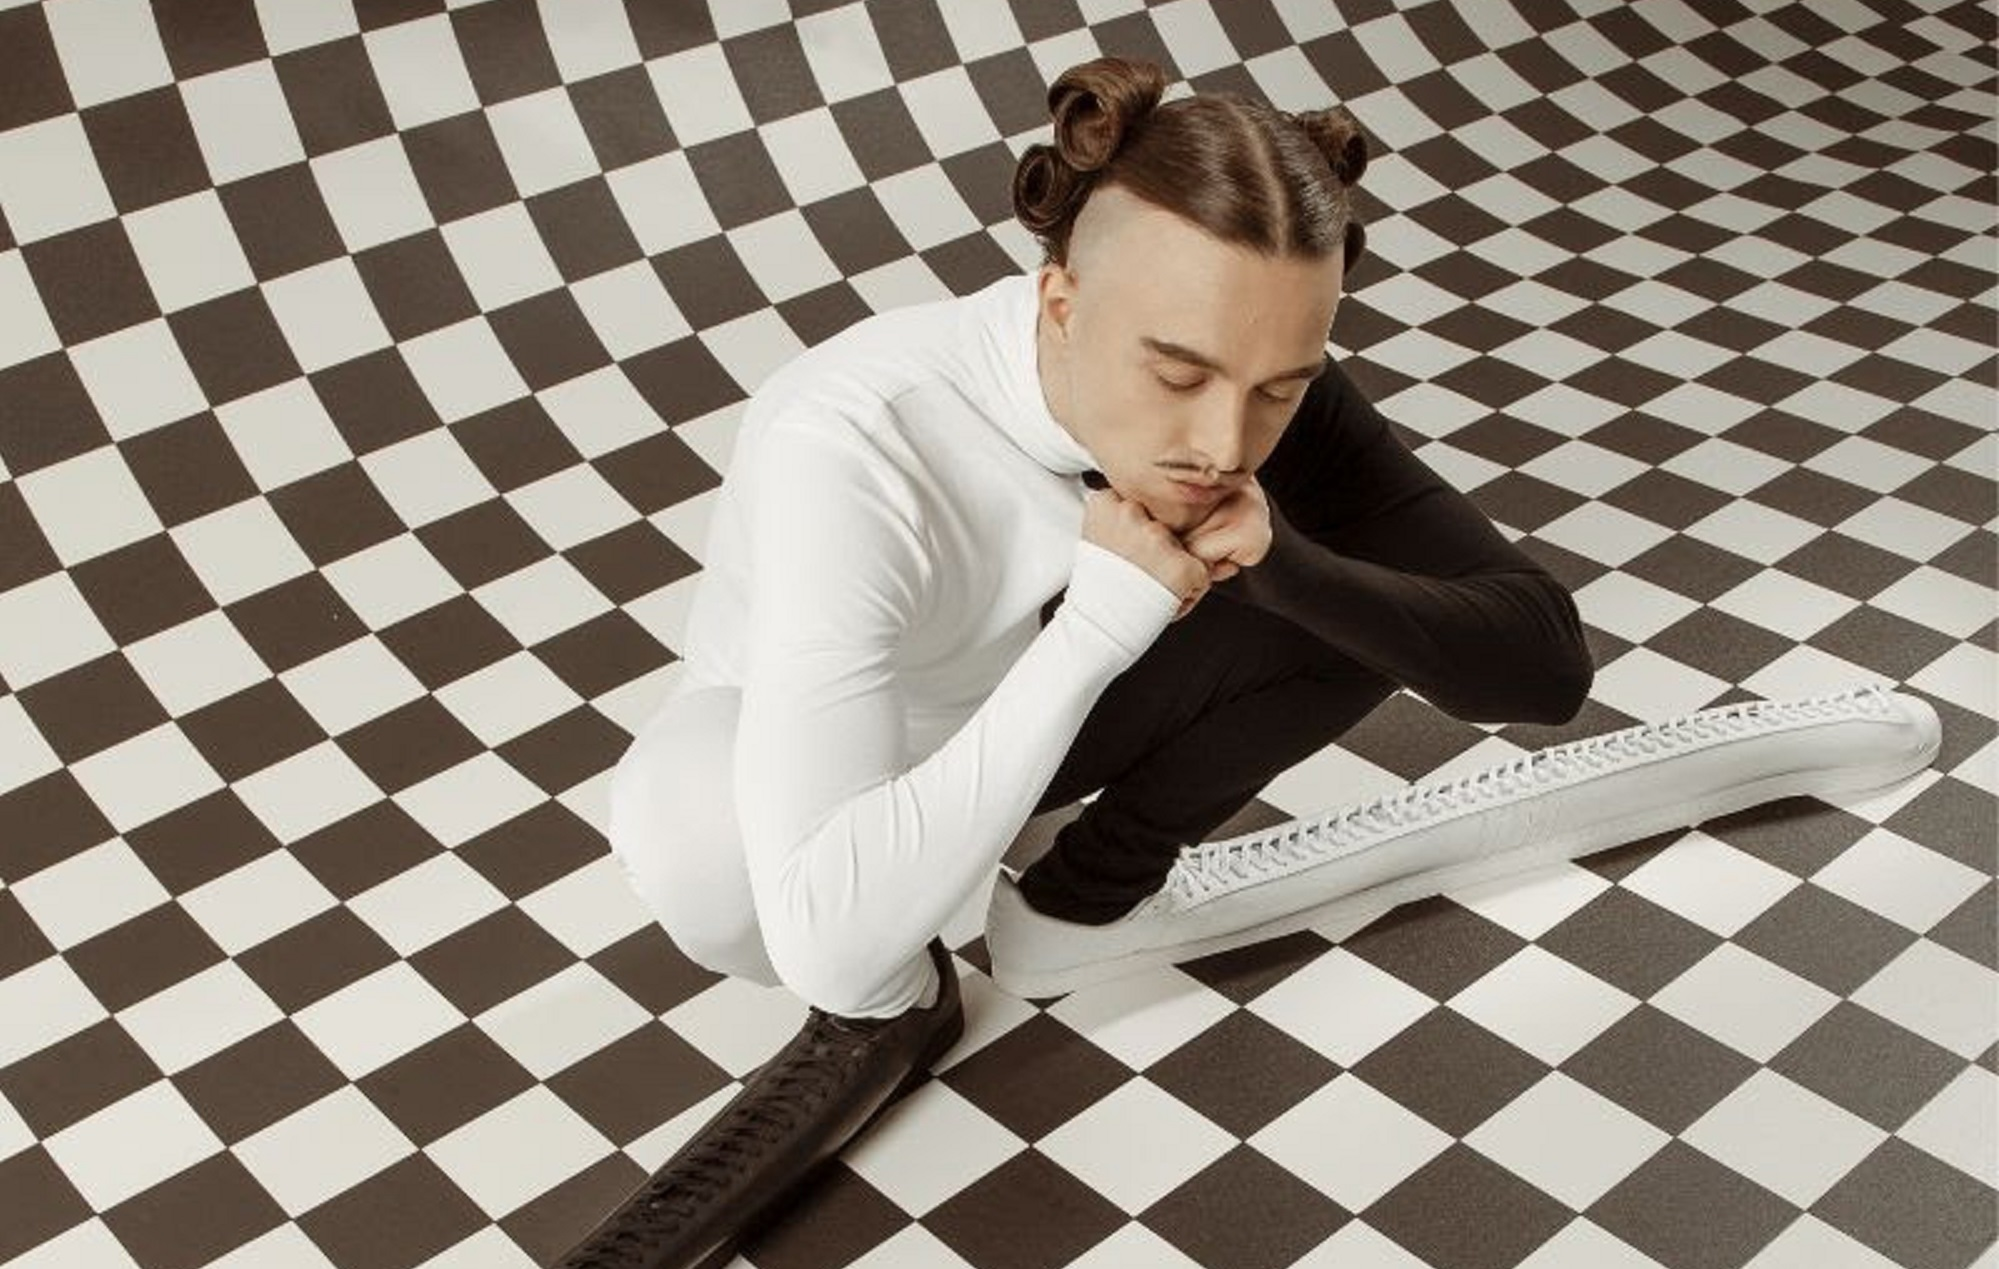 Tommy Cash has collaborated with Adidas on some really long shoes